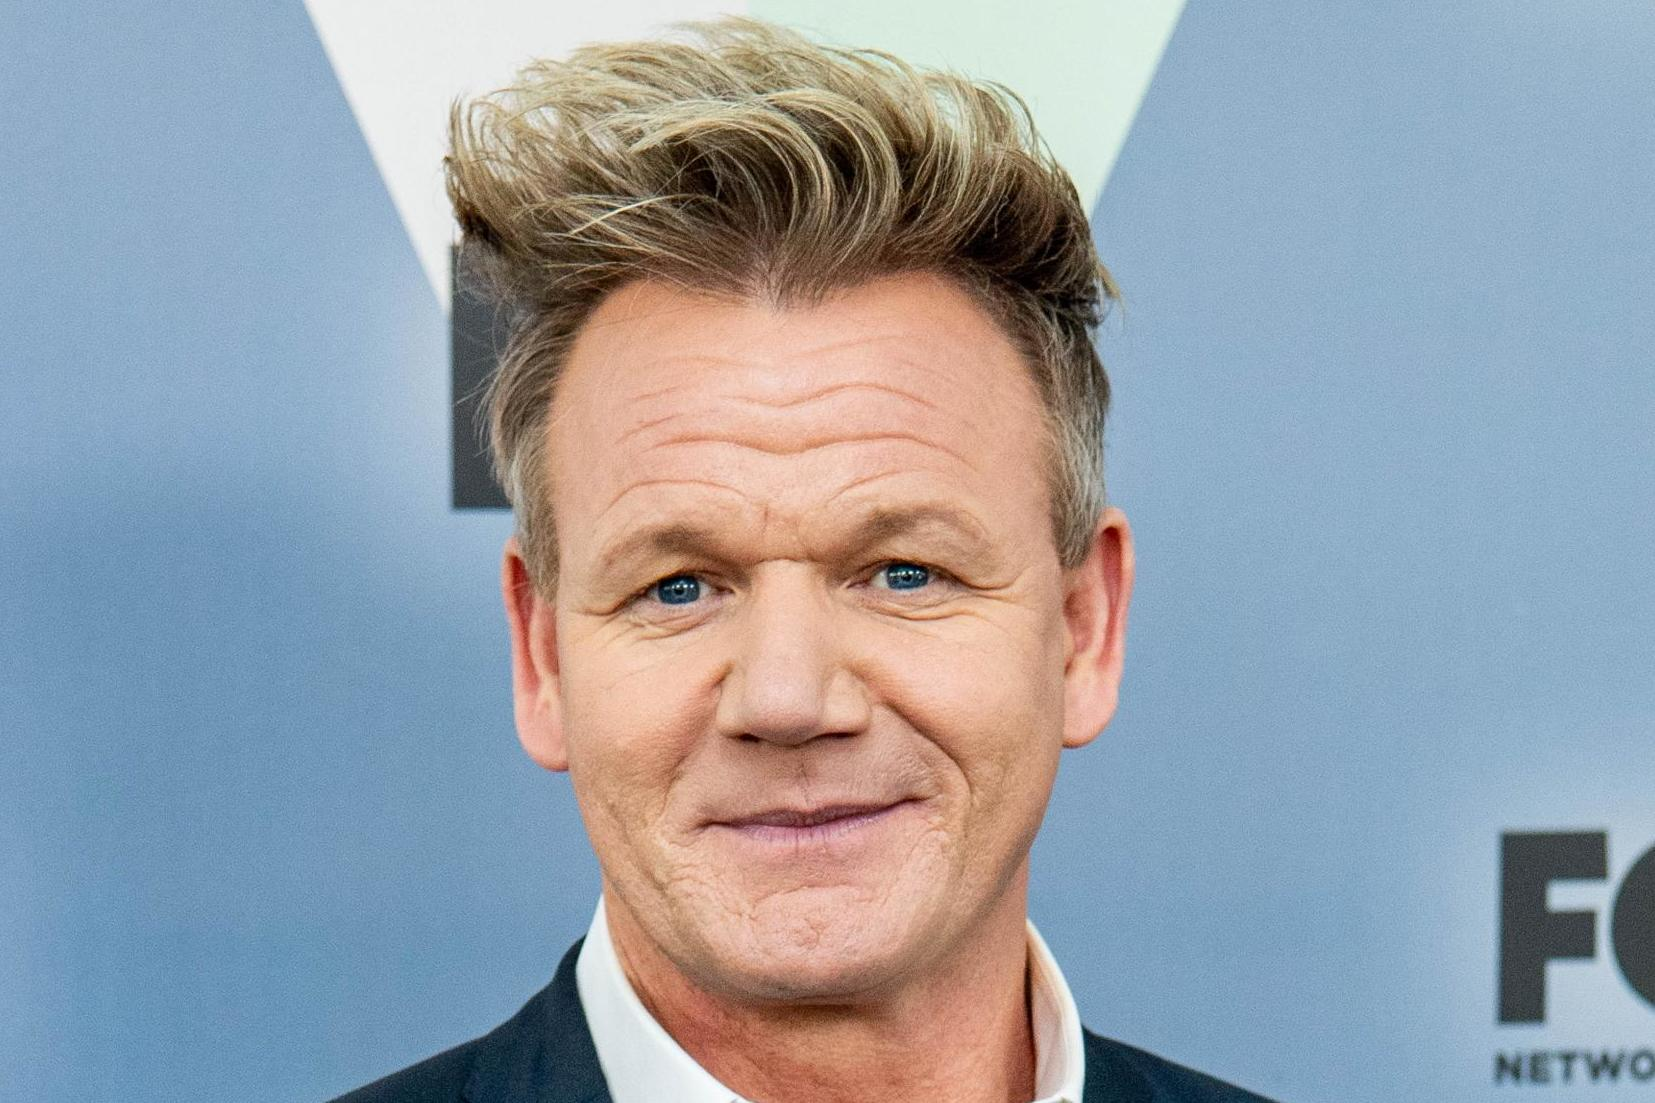 Gordon Ramsay tells Piers Morgan to go f*** himself after veganism criticism 1